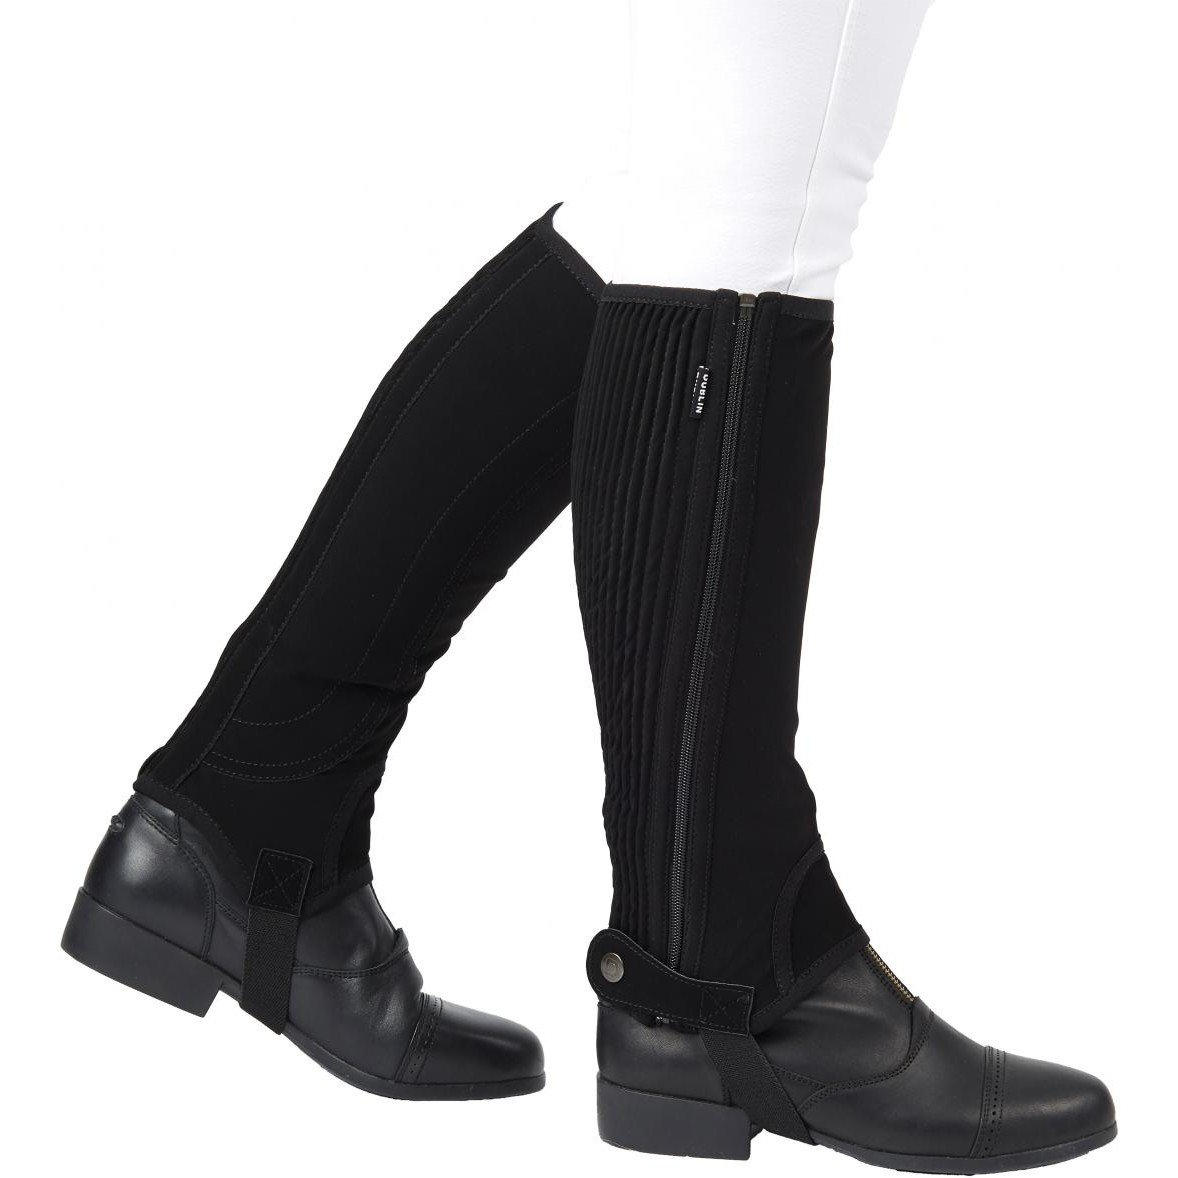 Dublin Childs Easy Care Half Chaps Medium Black